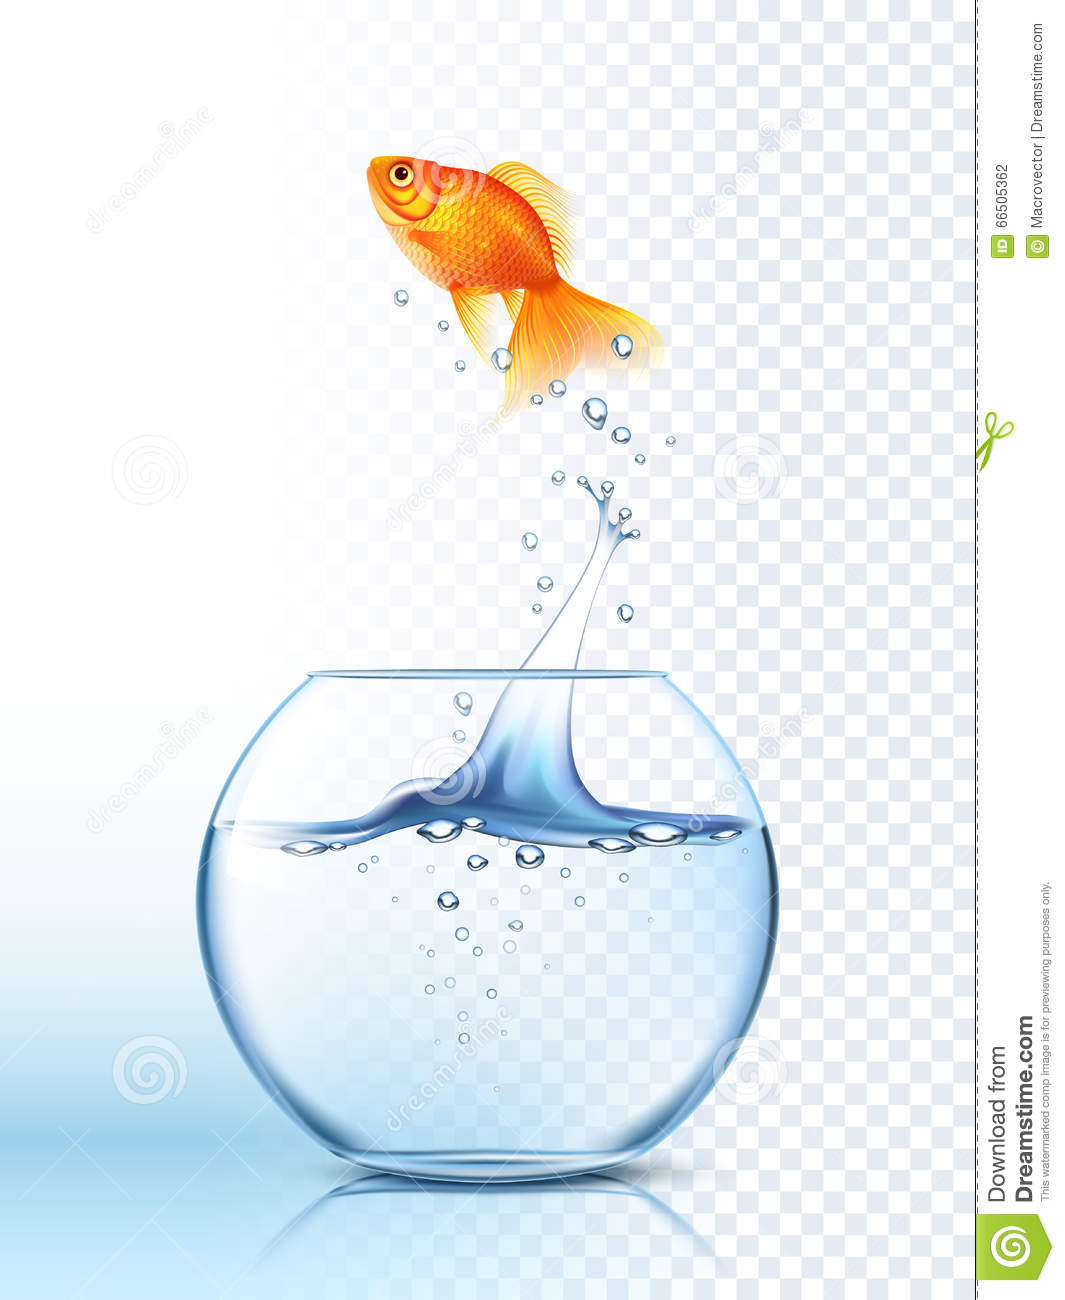 Golden fish jumping out bowl poster stock vector image for Dream about fish out of water